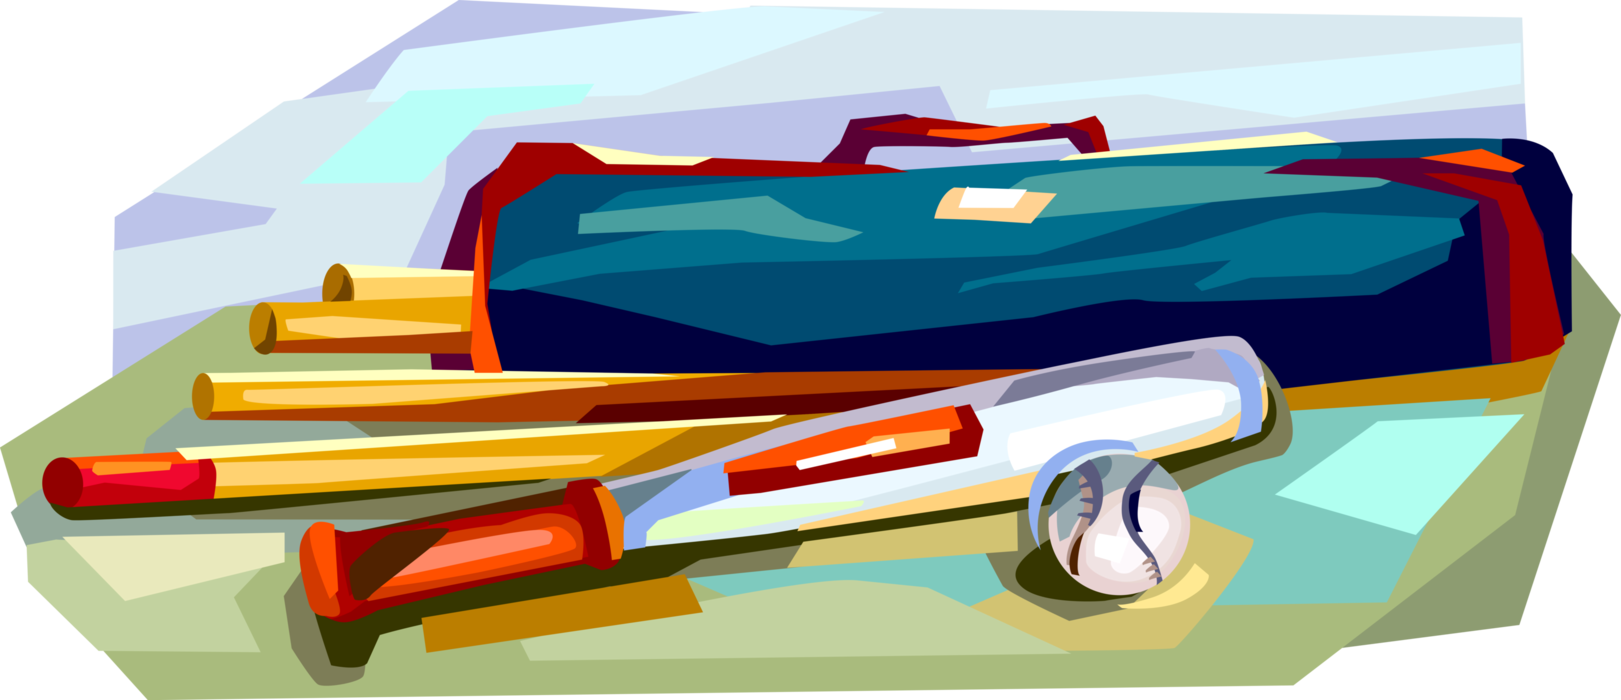 Bat and ball game. Sports clipart rounders